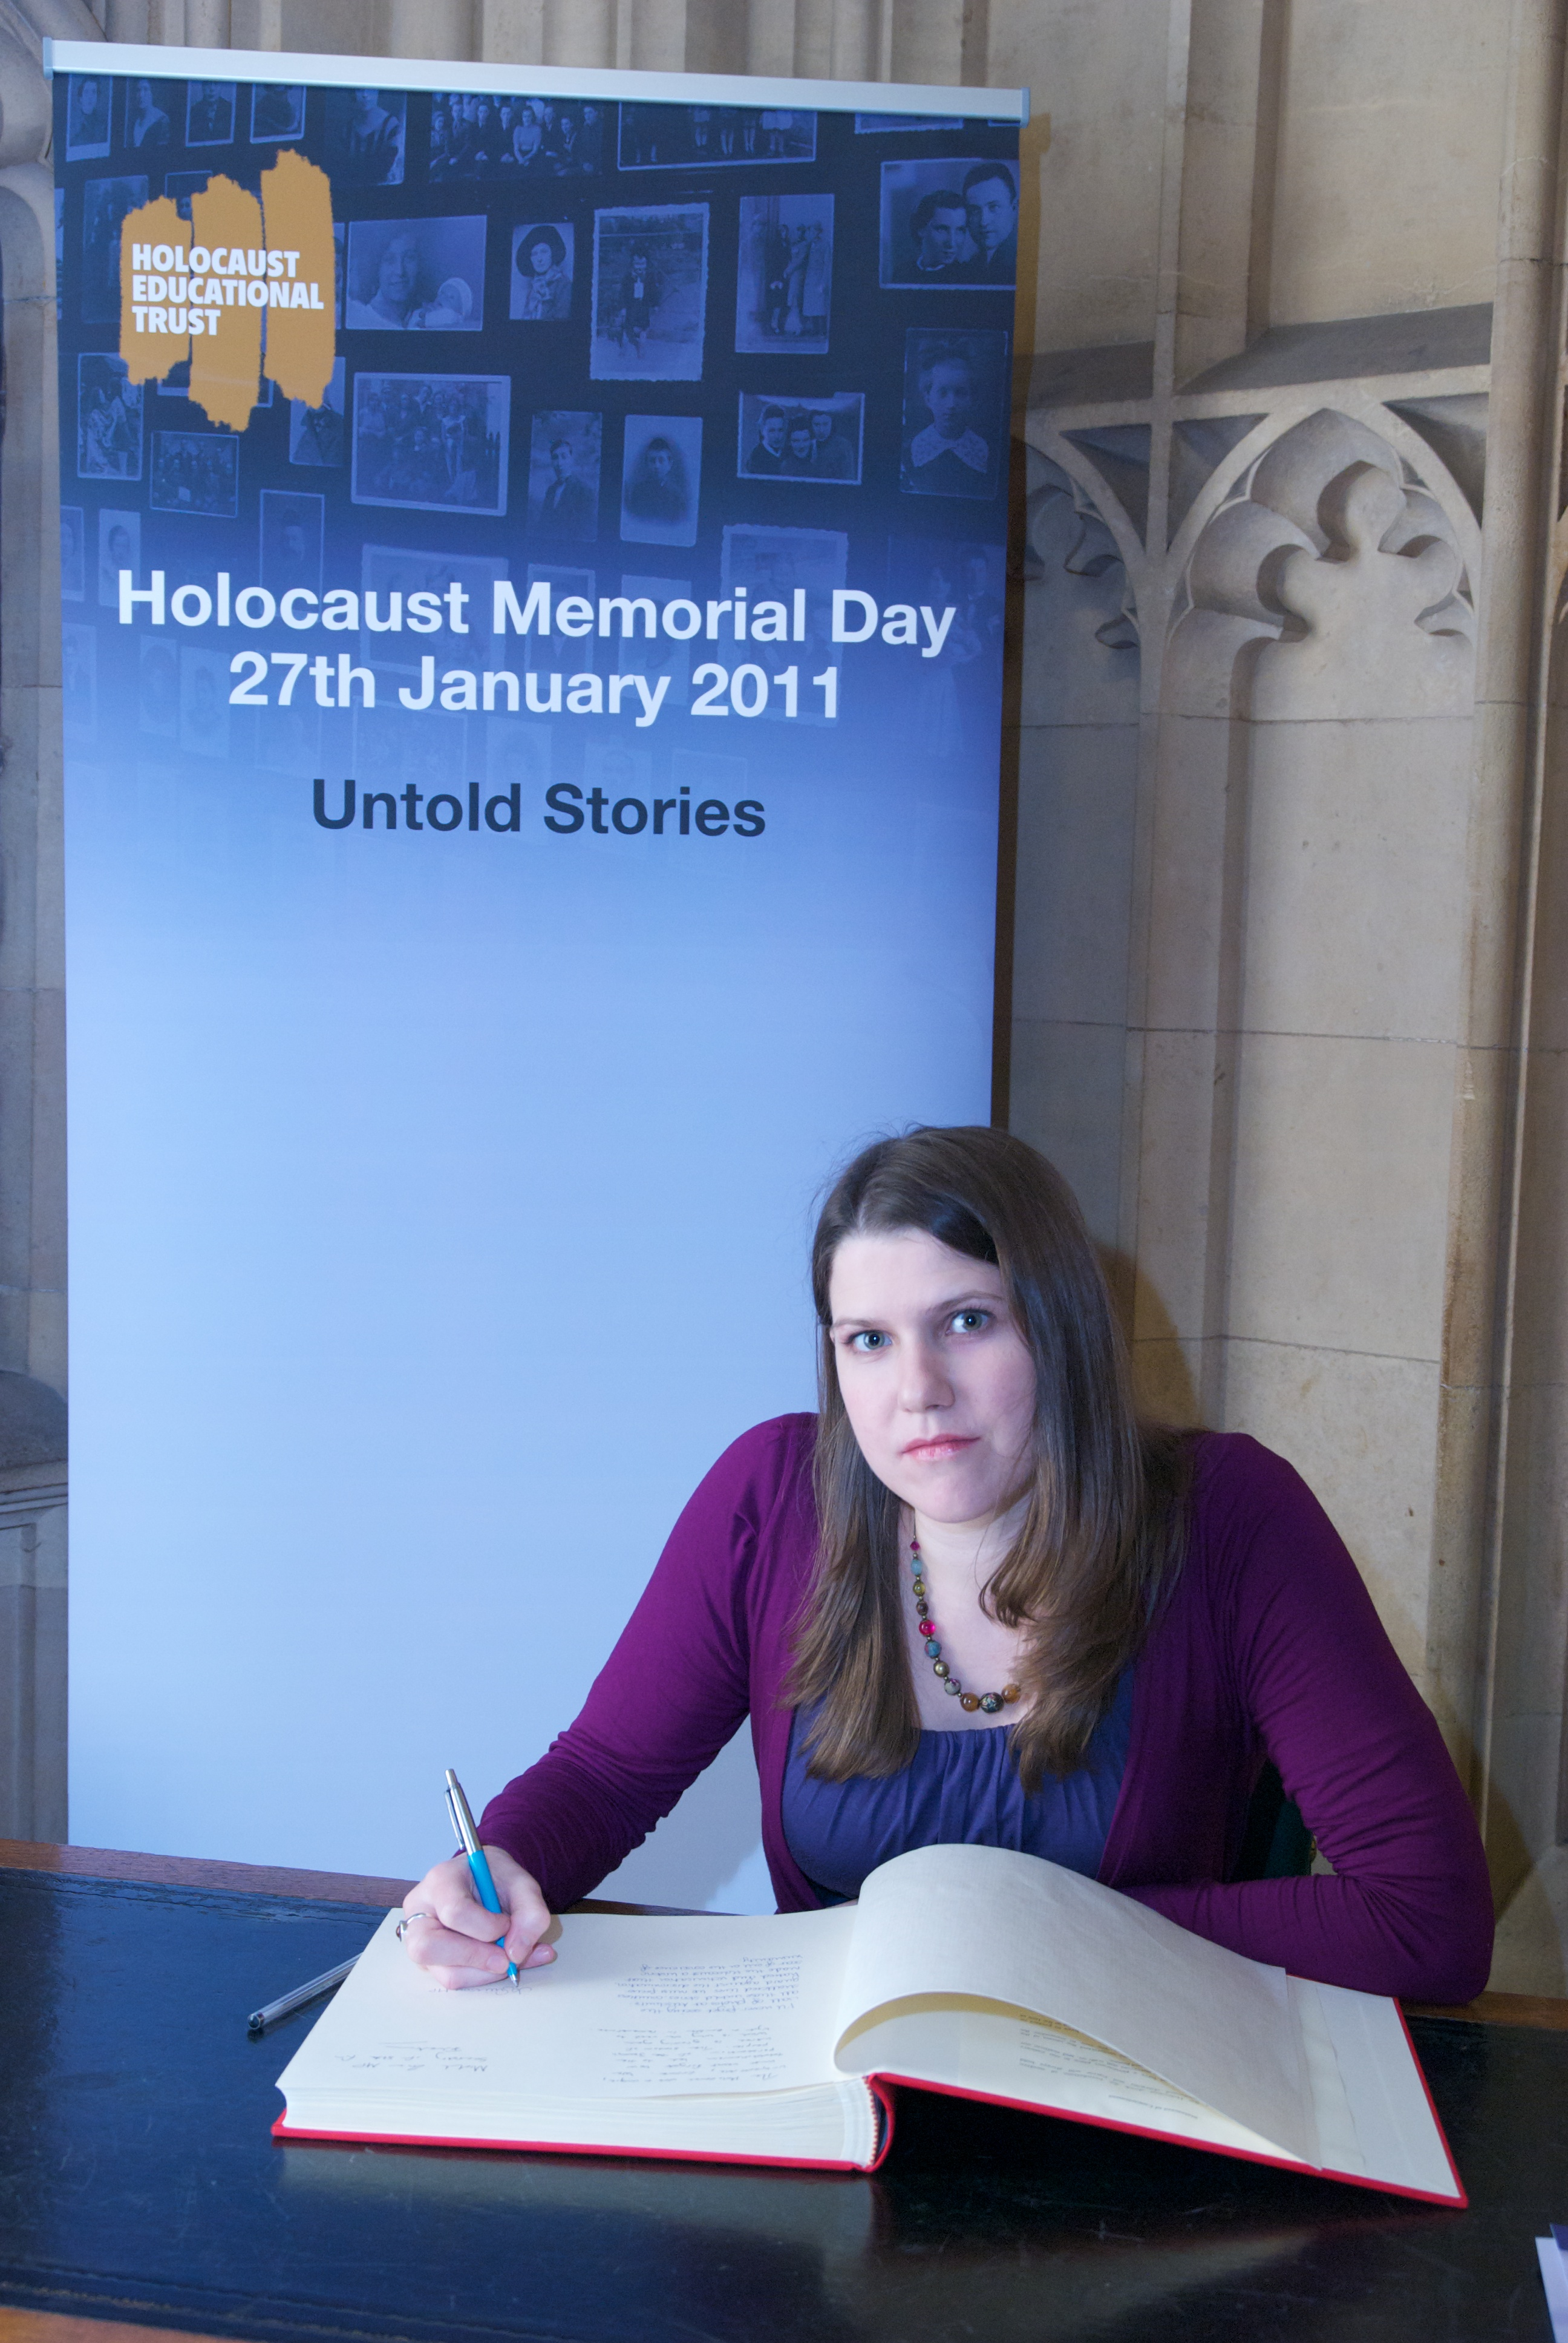 Jo_Swinson_-_Holocaust_Memorial_Day.jpg